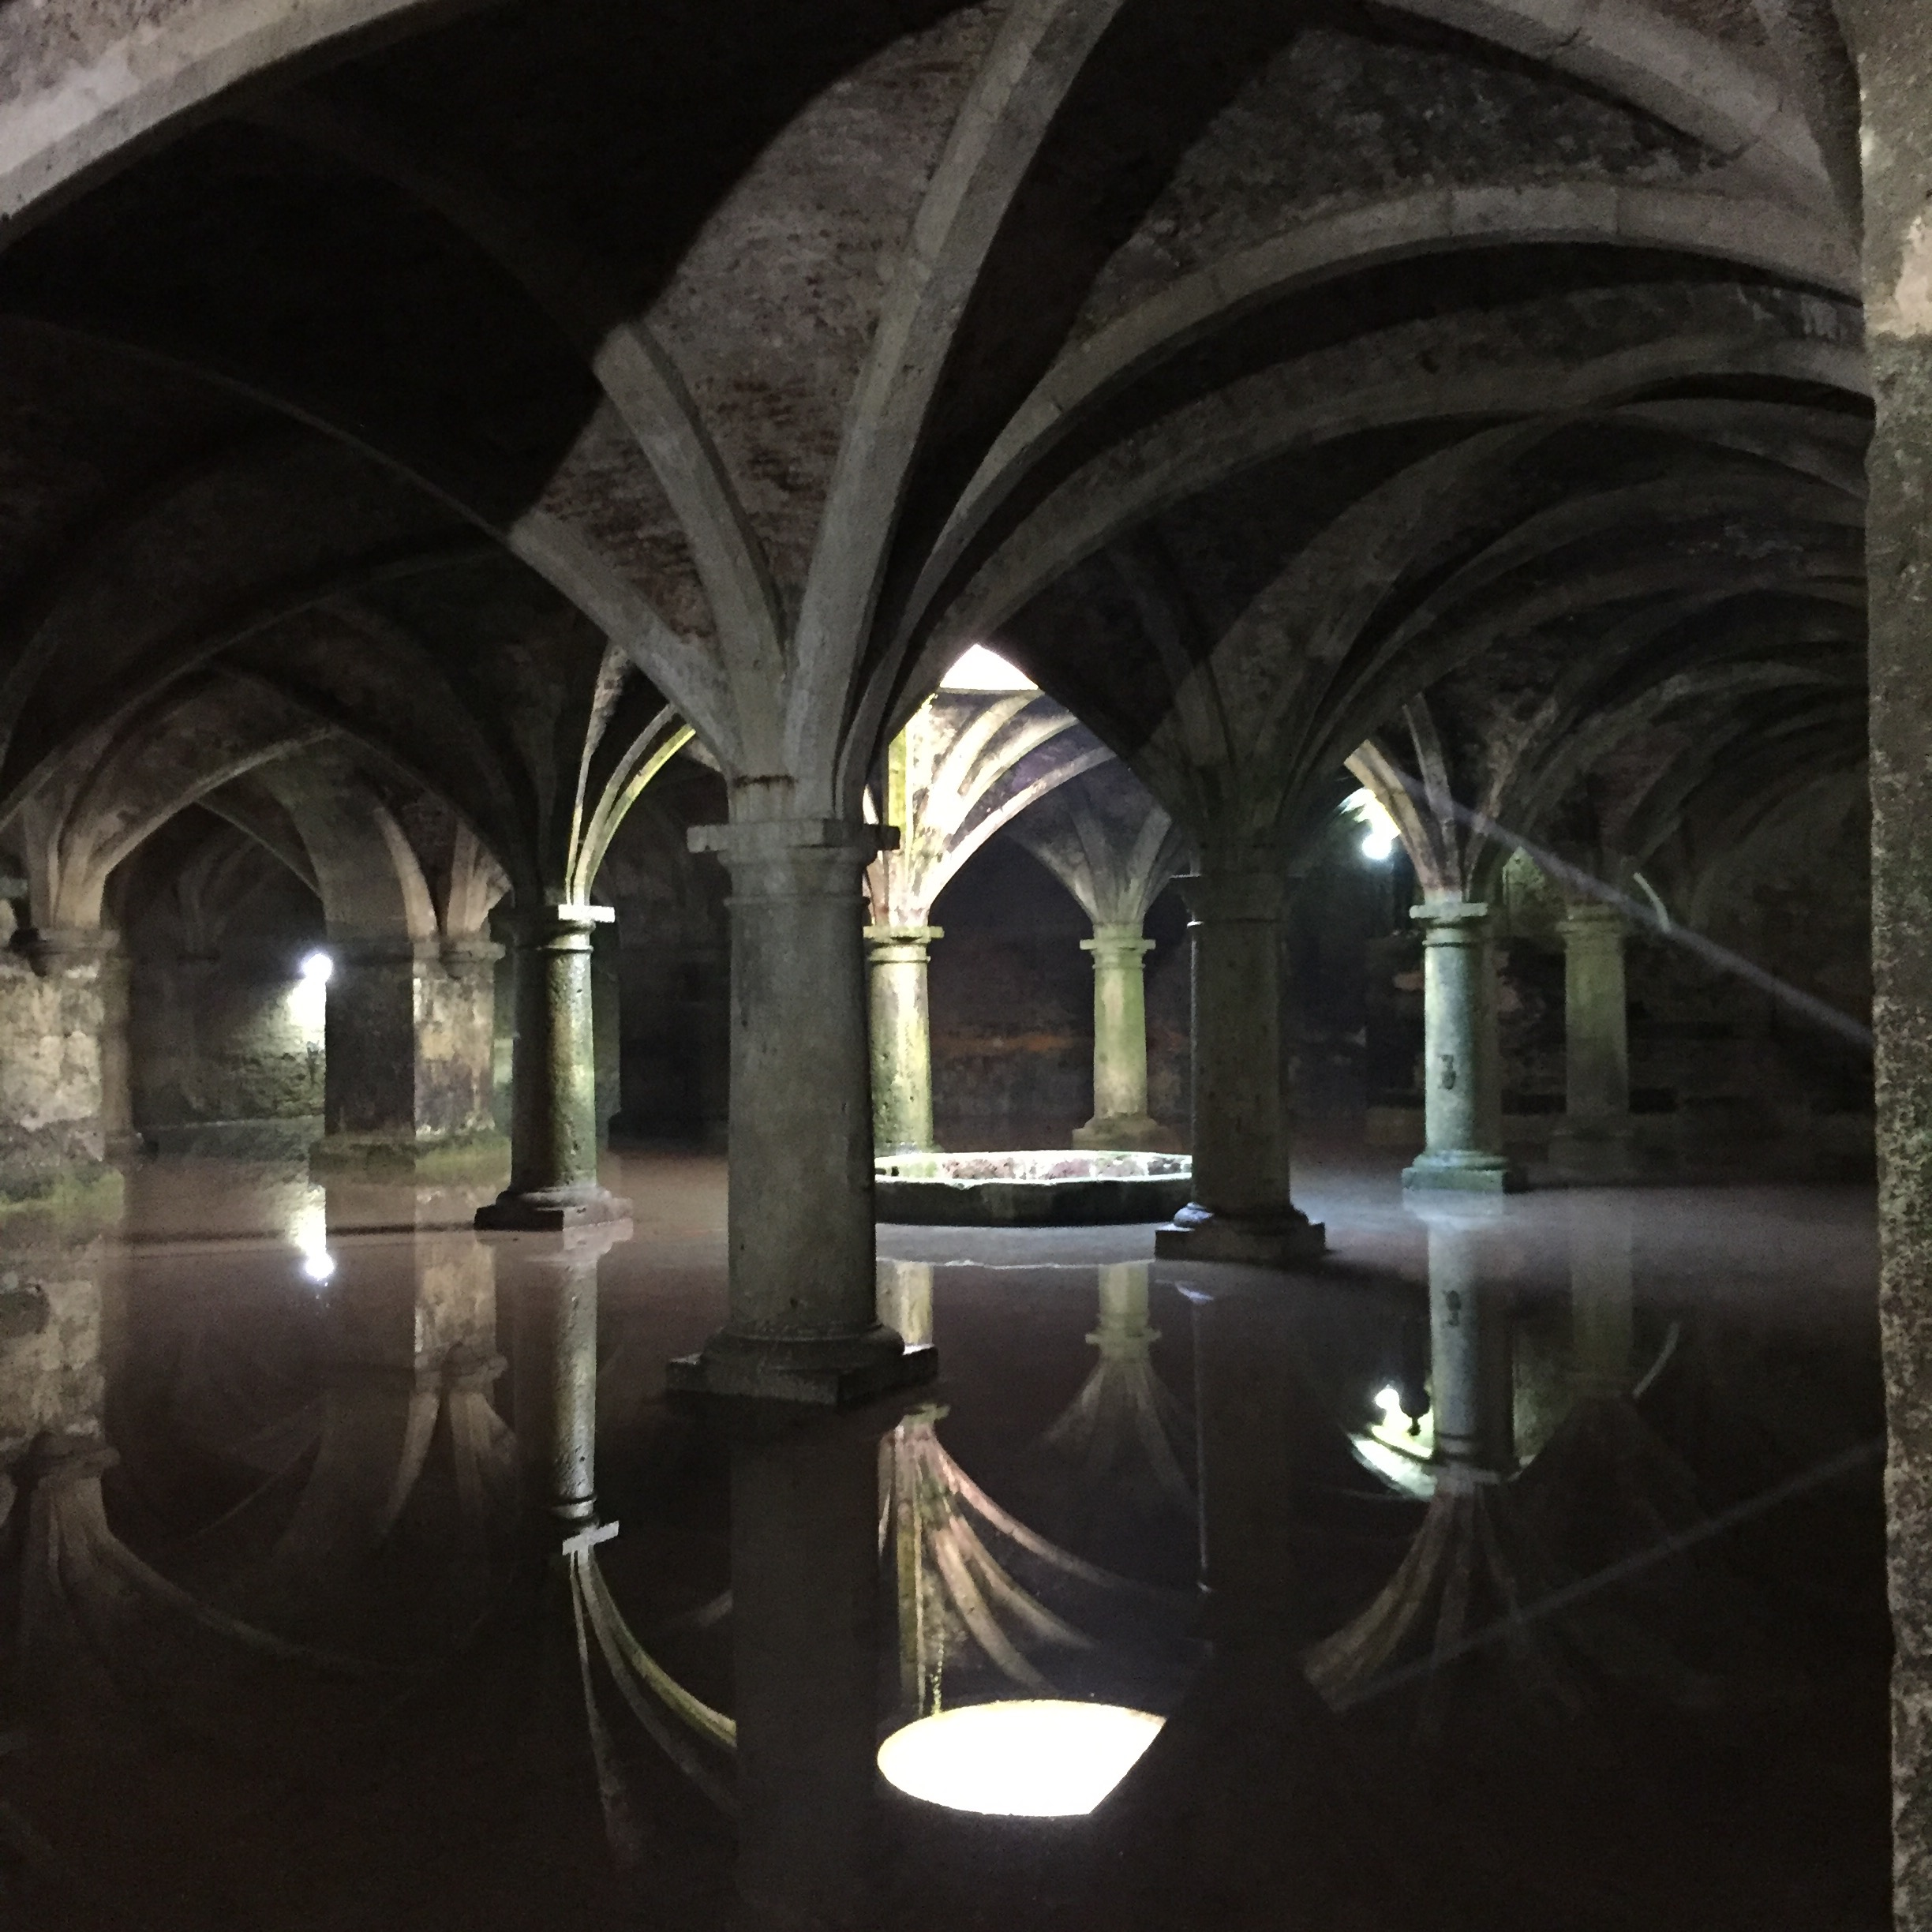 Portuguese water cisterns or the Chamber of Secrets?